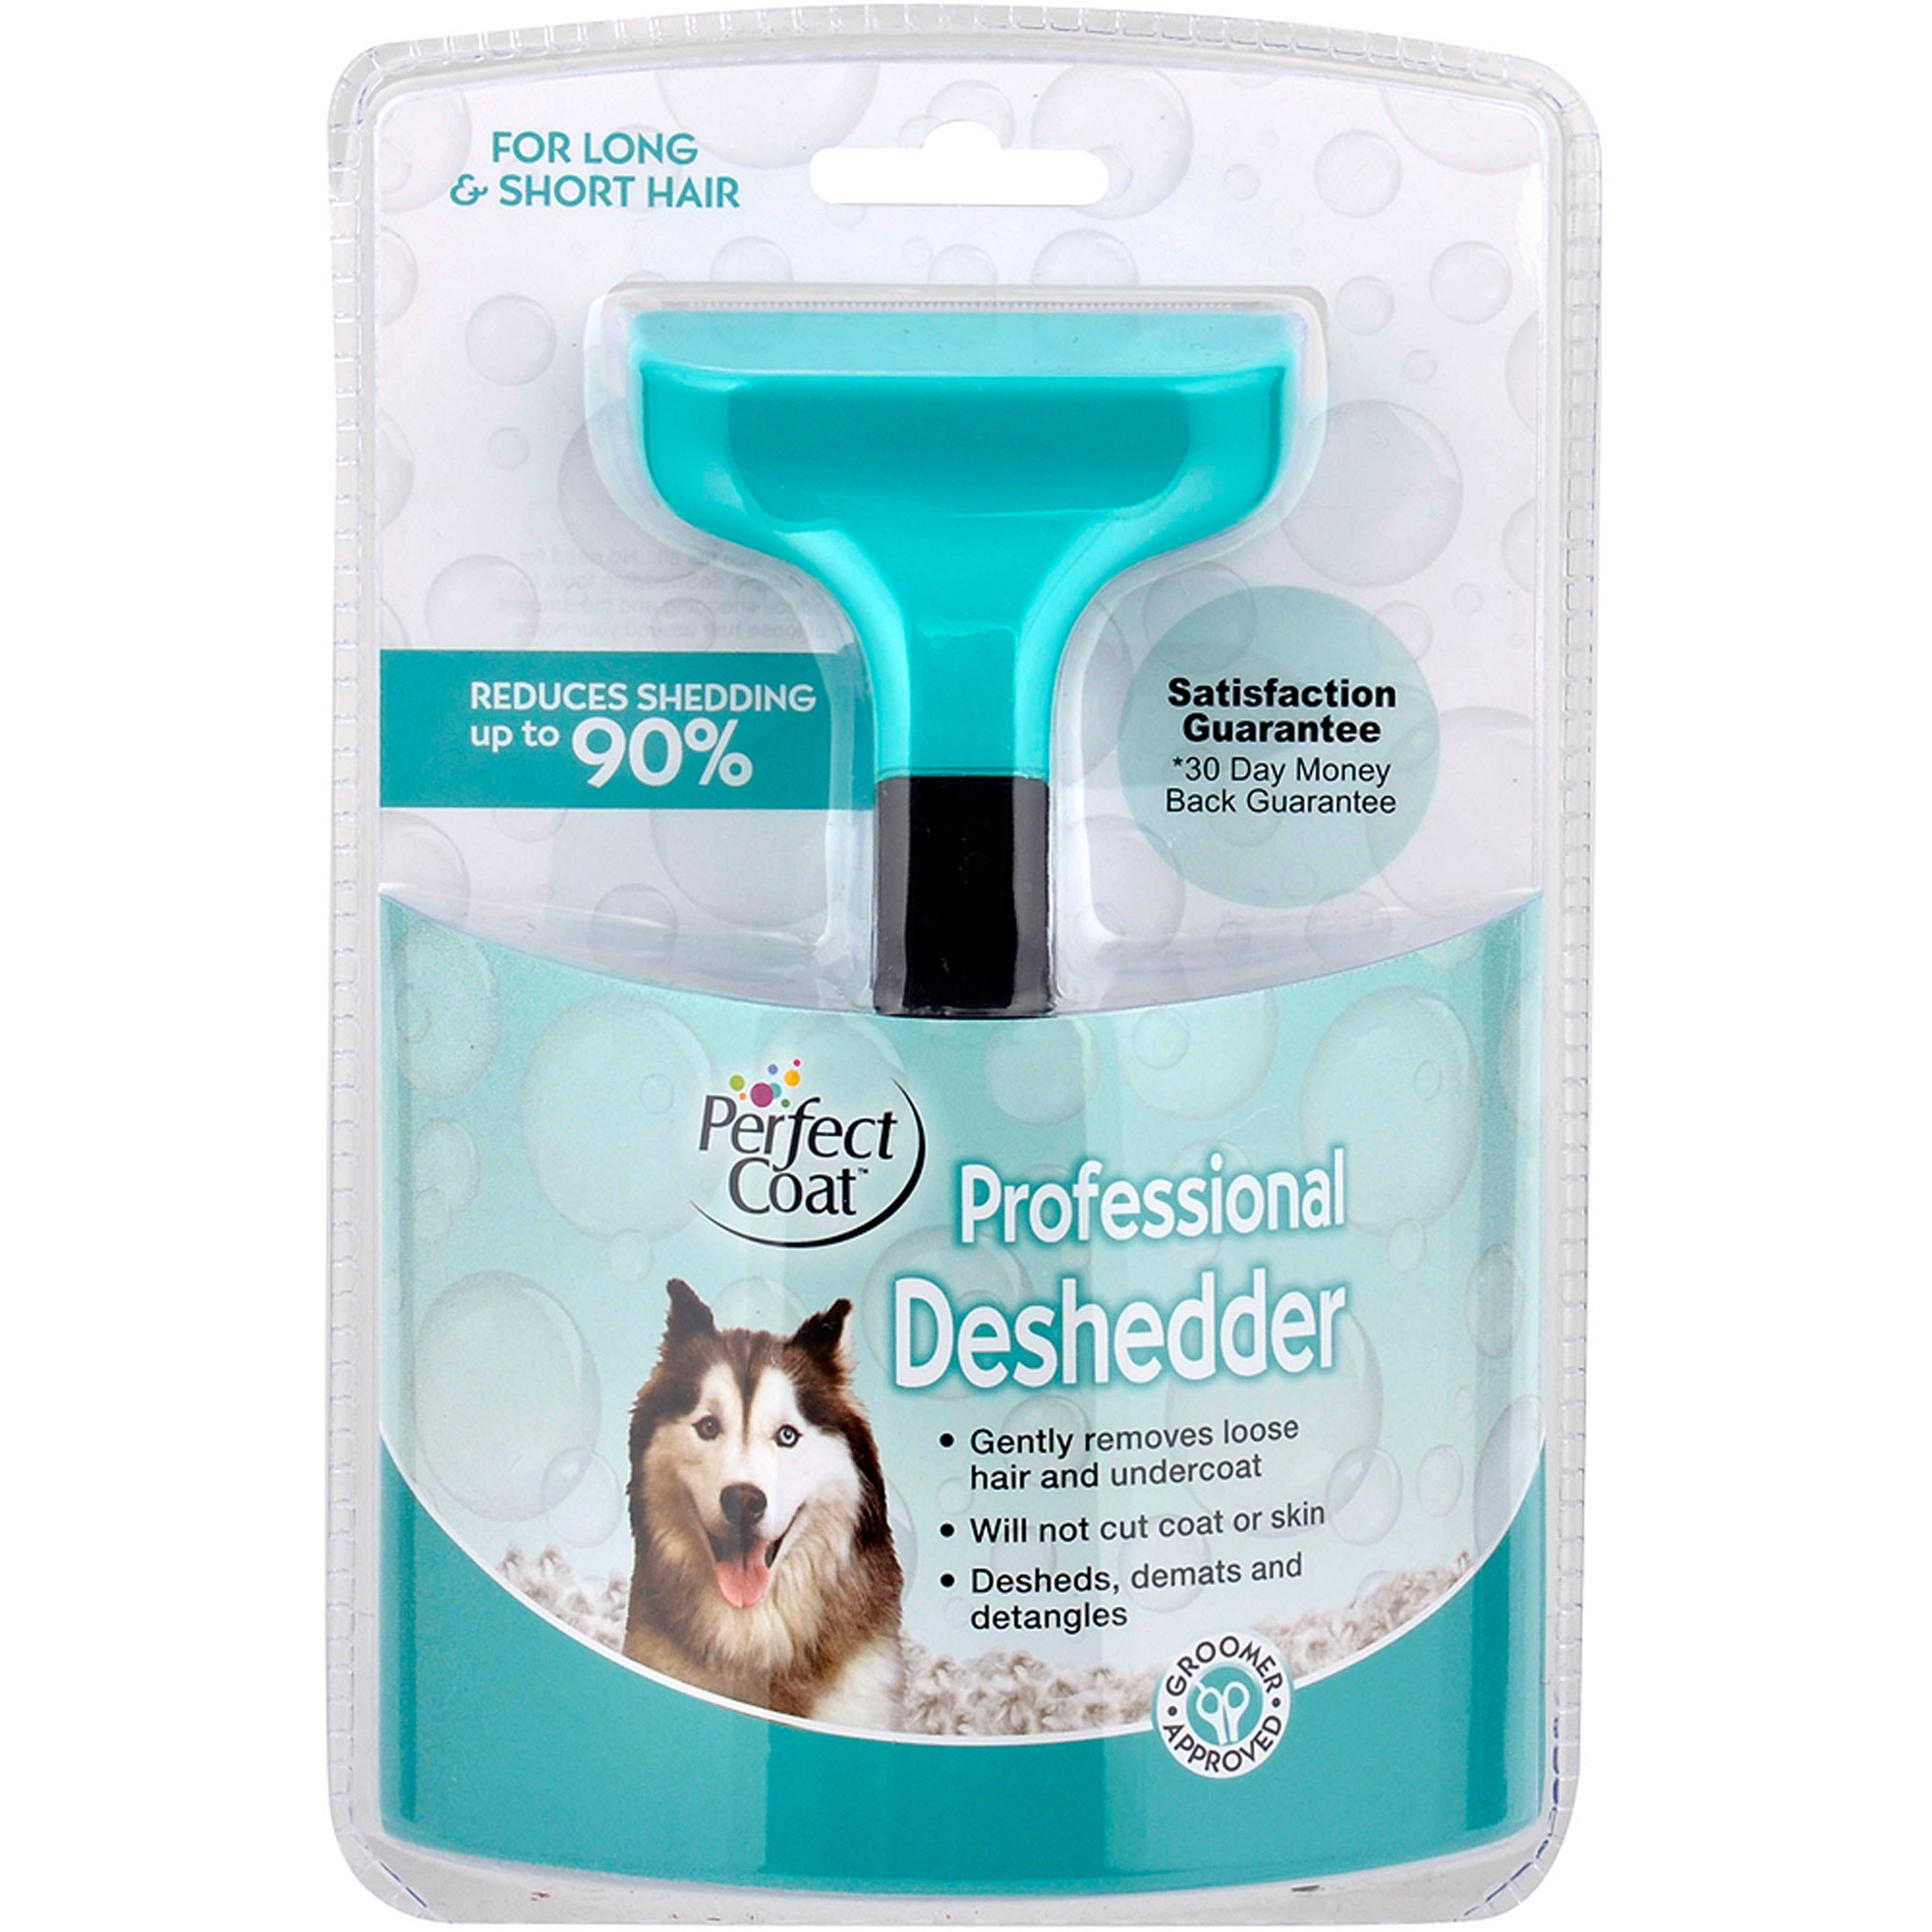 PerfectCoat Deshedding Tool for Dogs of All Sizes